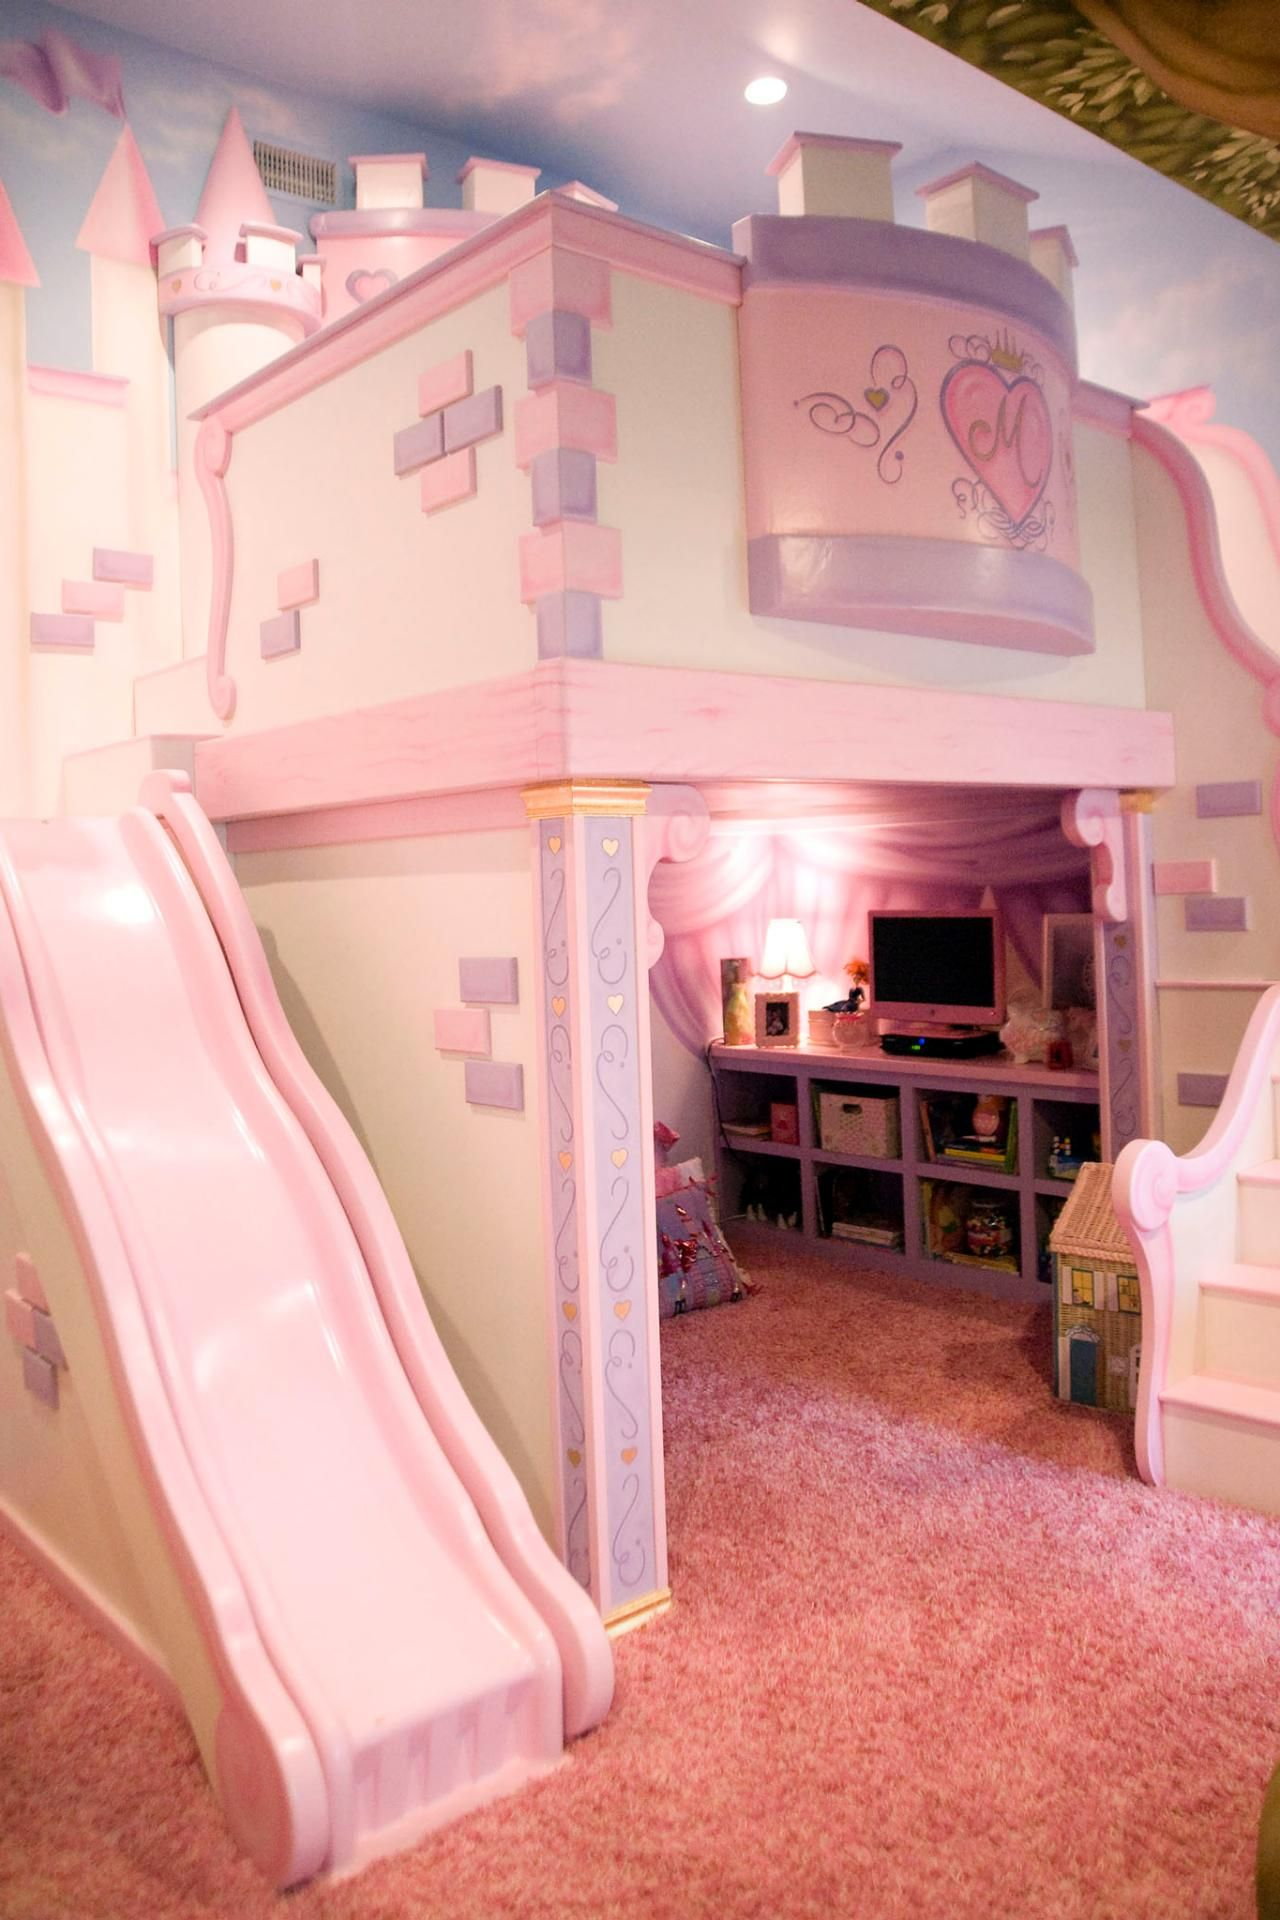 This Playful Pink Bedroom Is Any Little Princess S Dream The Custom Castle Features A Cozy Loft Be Kinder Zimmer Schloss Schlafzimmer Prinzessinenschlafzimmer